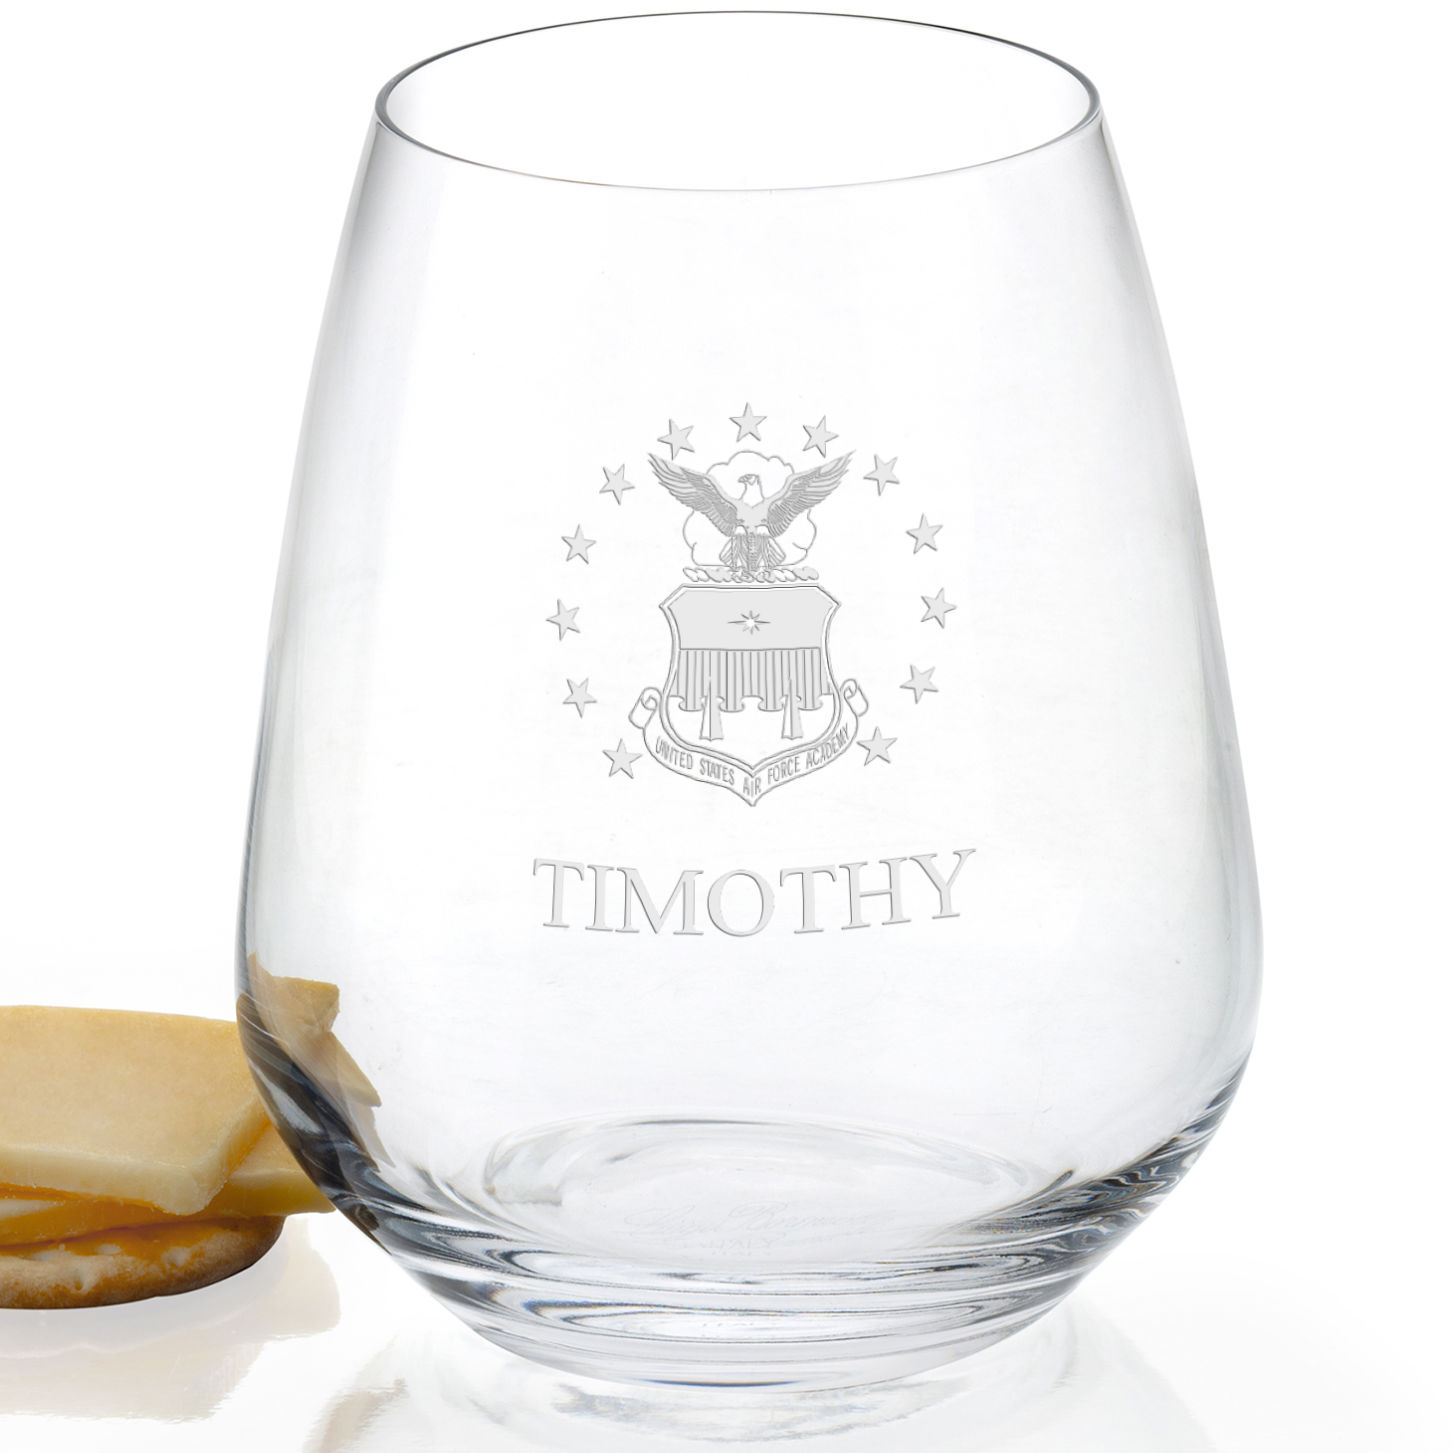 Air Force Academy Stemless Wine Glasses - Set of 2